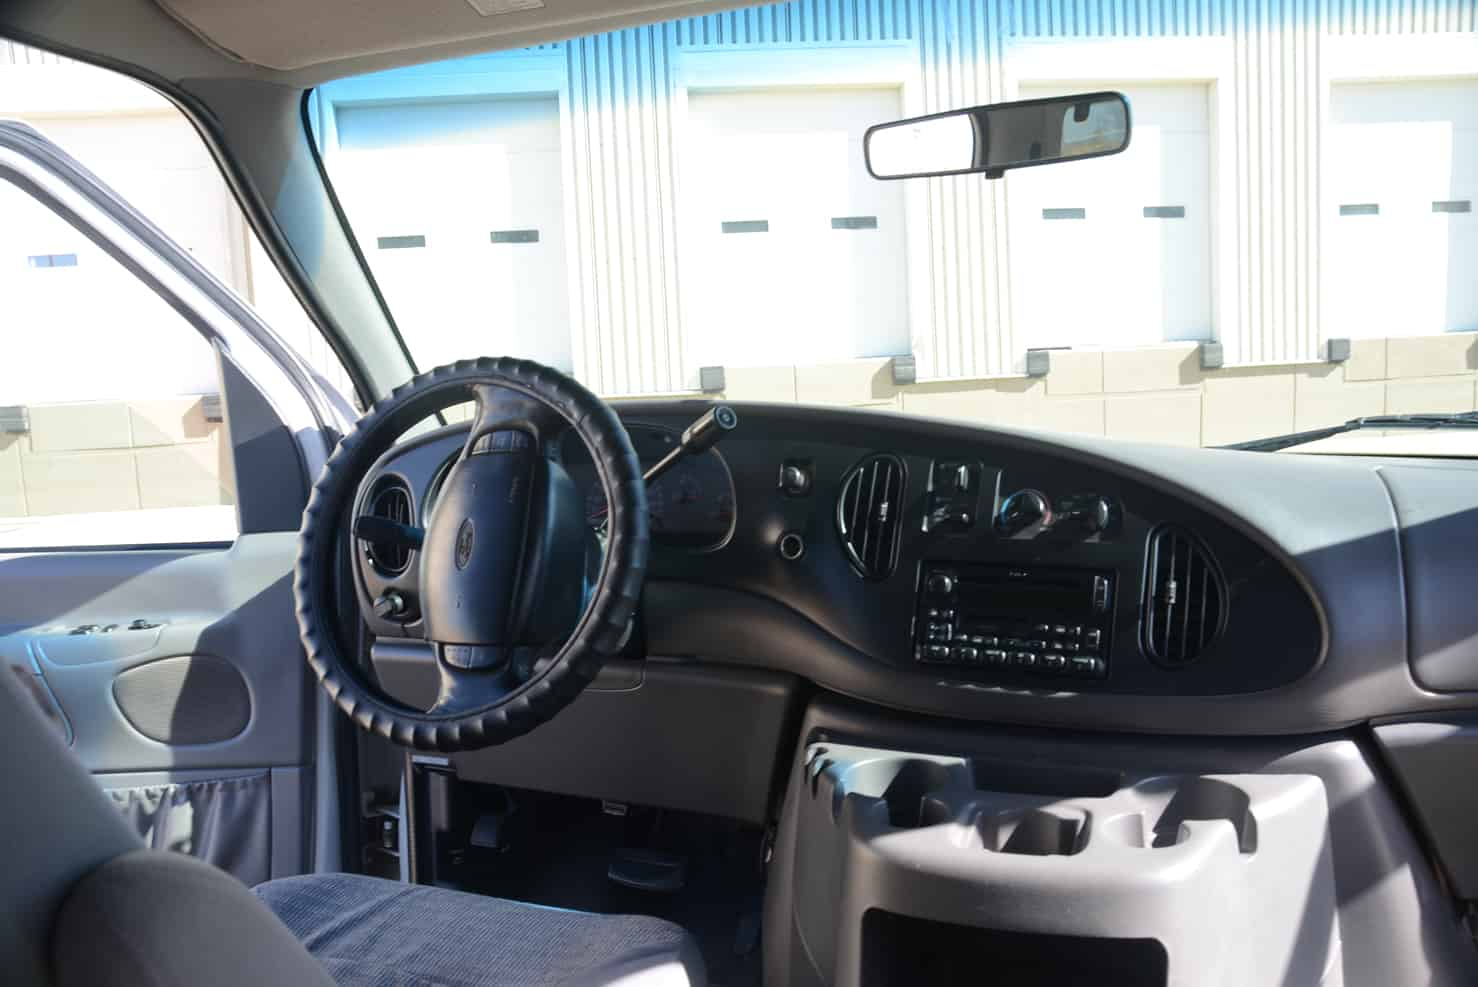 Ford Super Duty Vans 12 to 15 Passengers | Dashboard